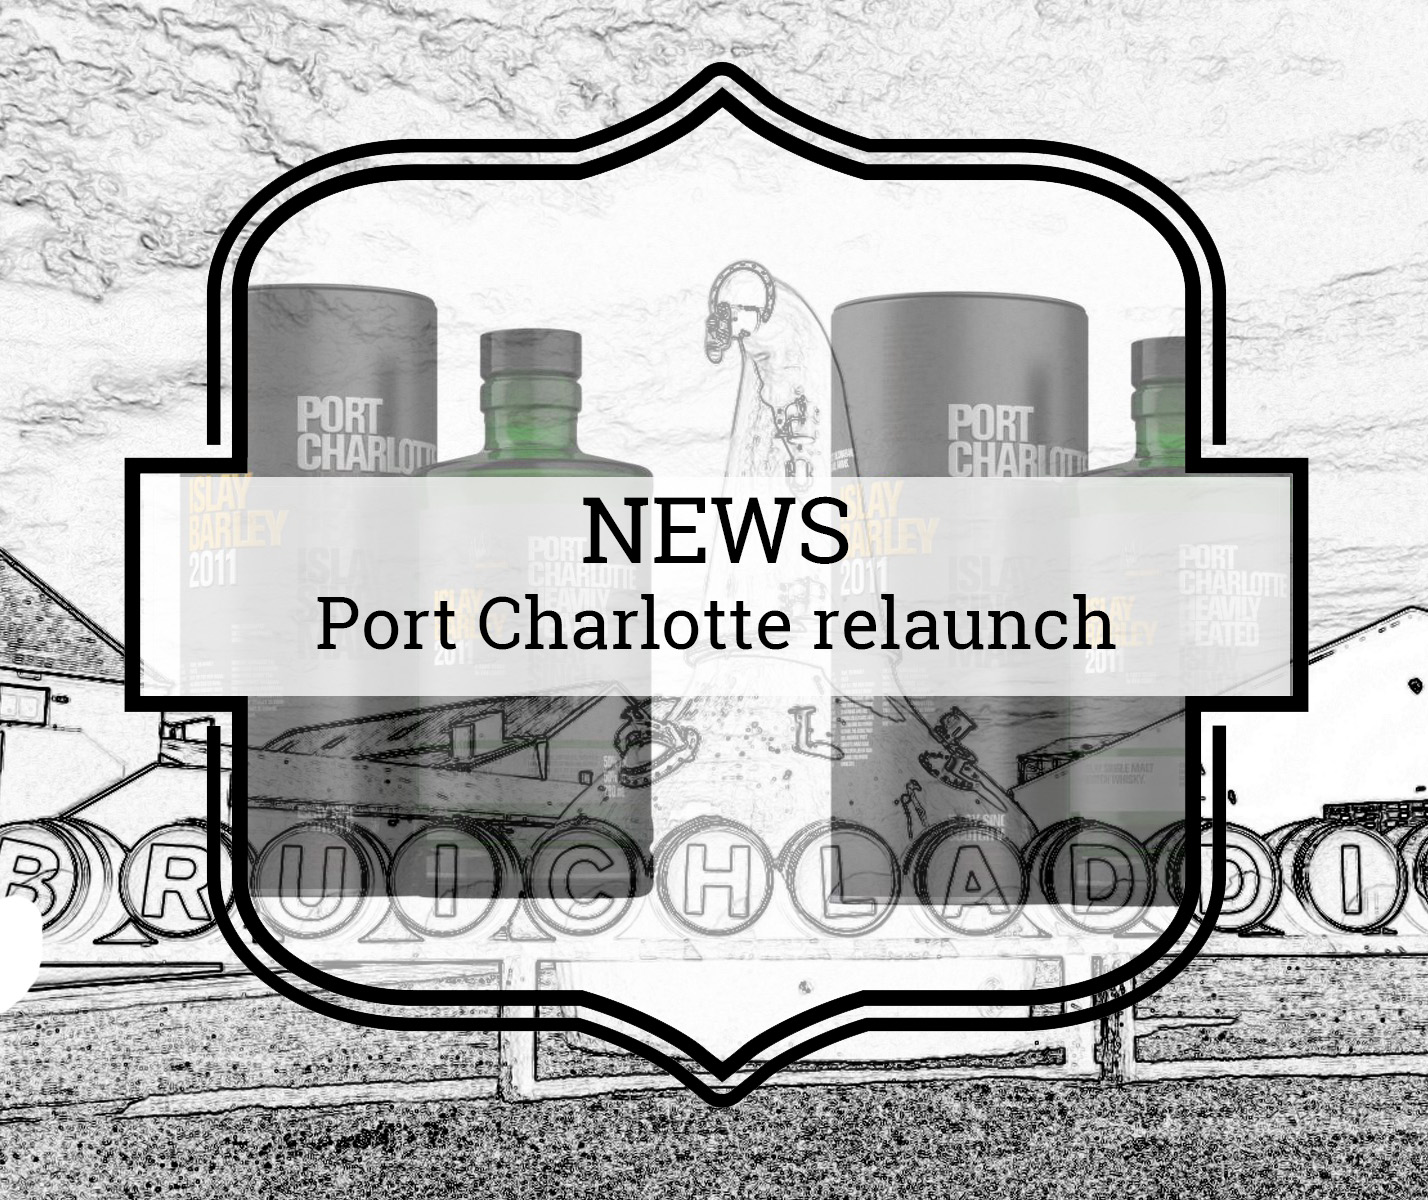 medium resolution of bruichladdich gives its port charlotte brand a new look